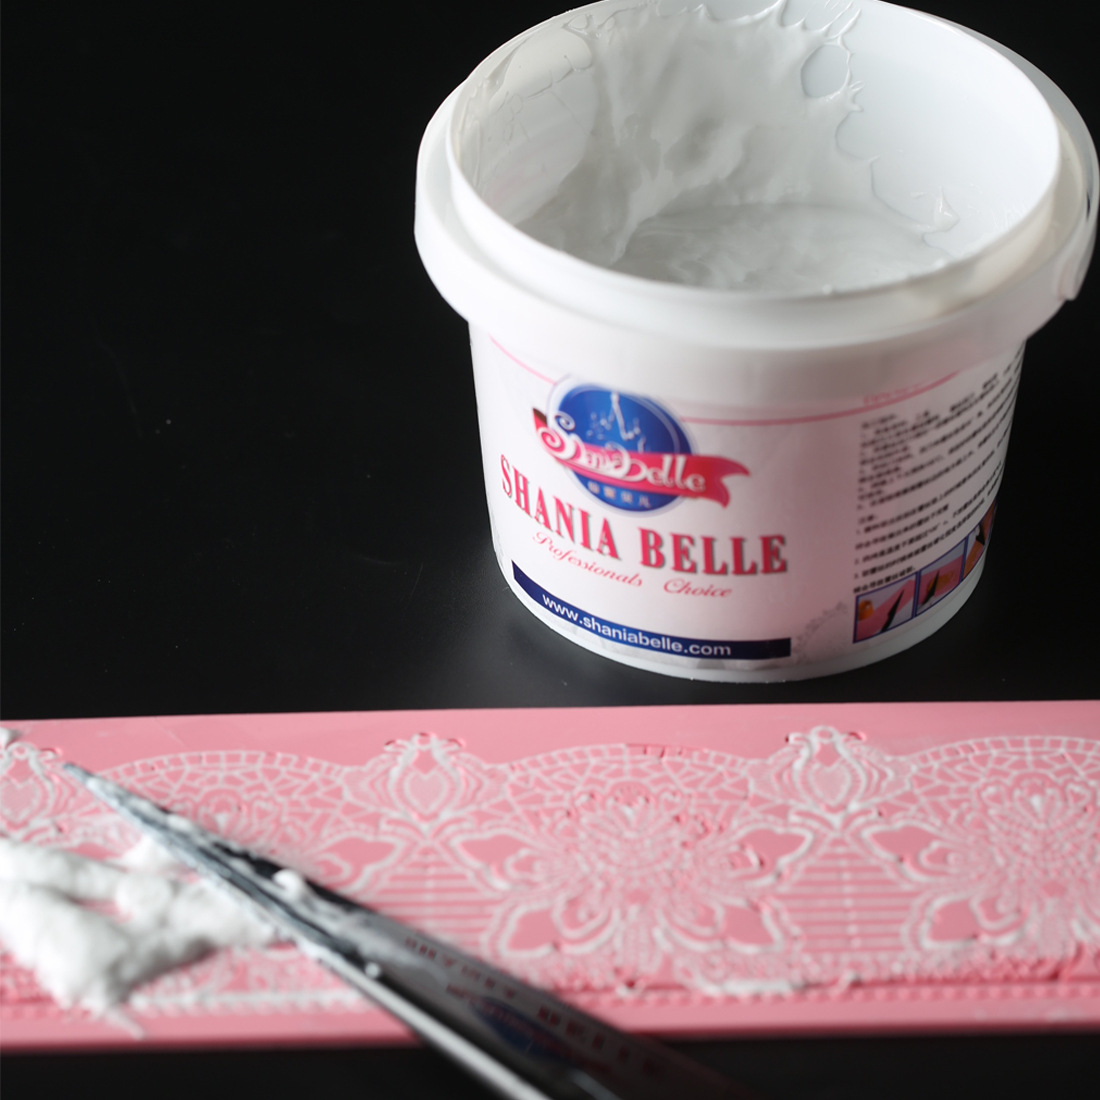 Belle White Lace Cream Baking Ingredients Fondant Cake Lace Pad Raw Material 350g